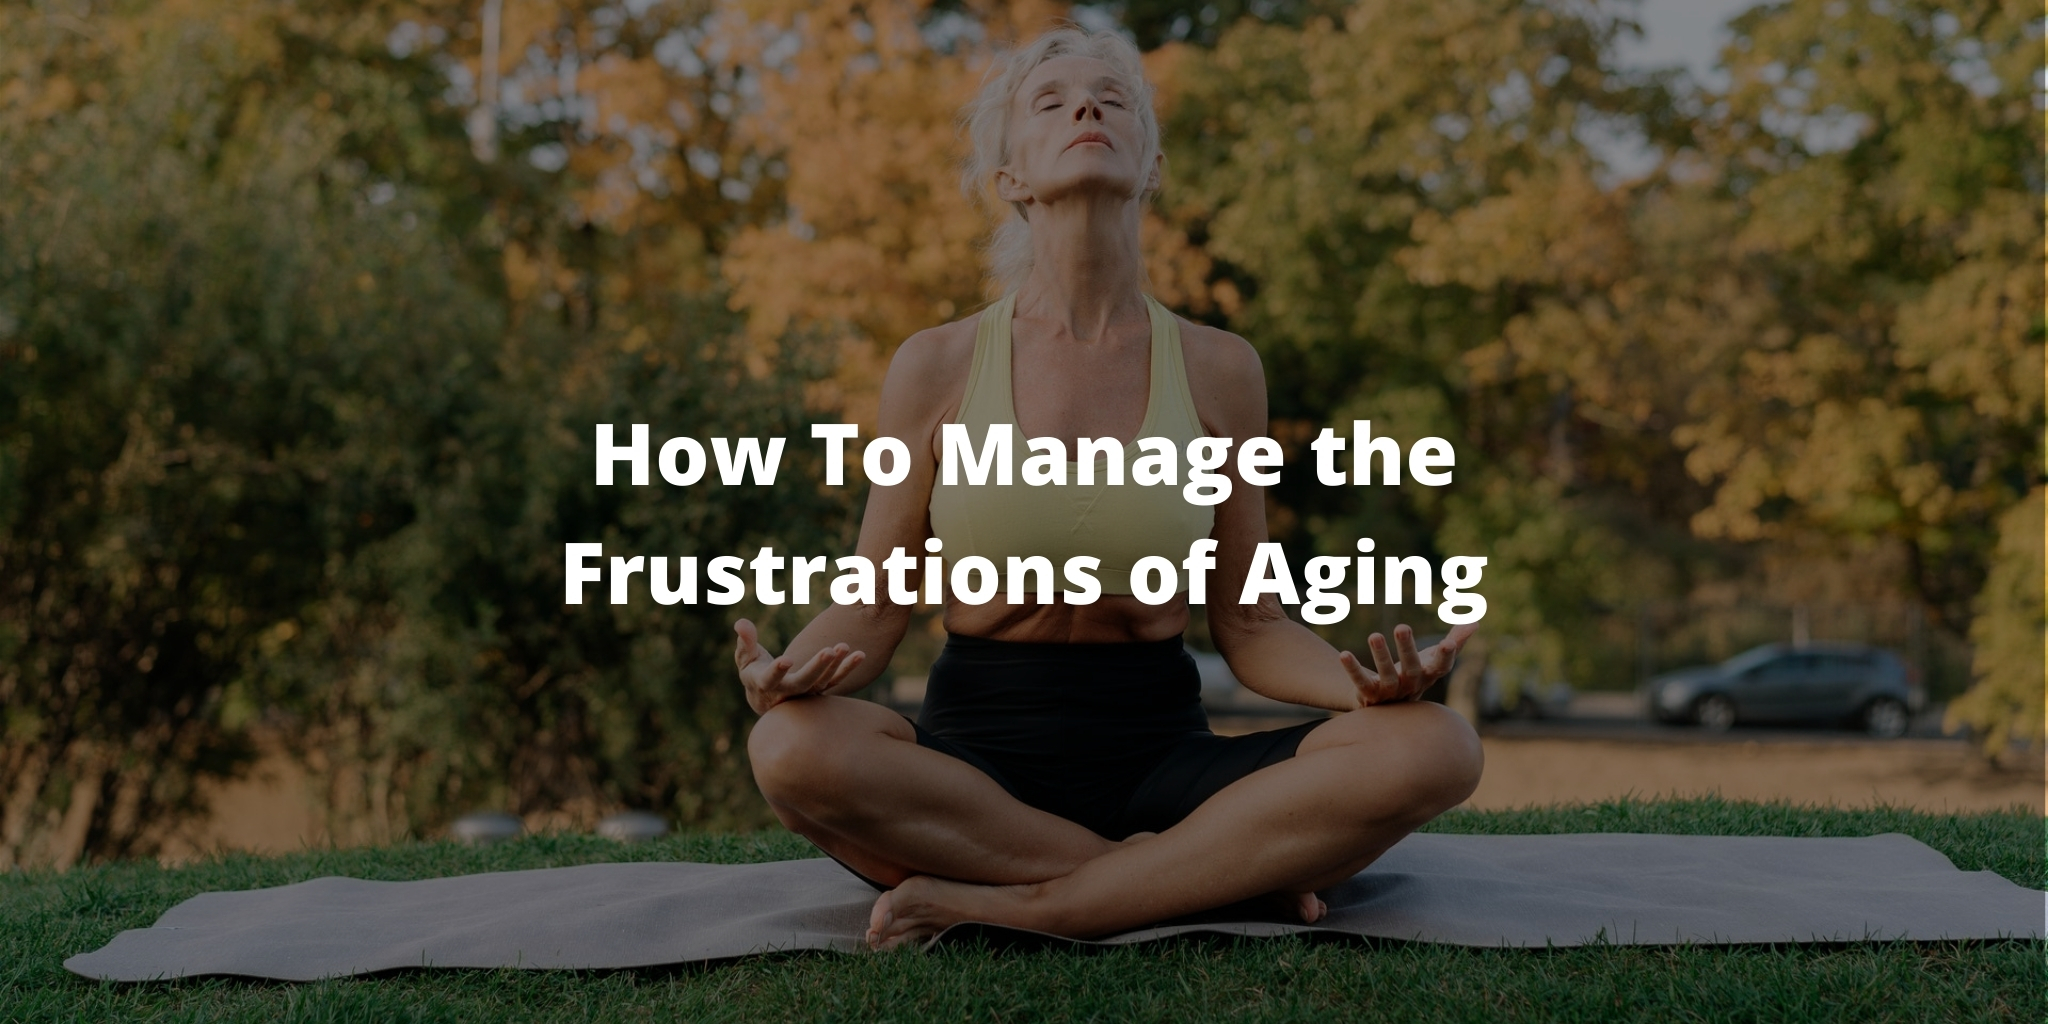 How To Manage the Frustrations of Aging